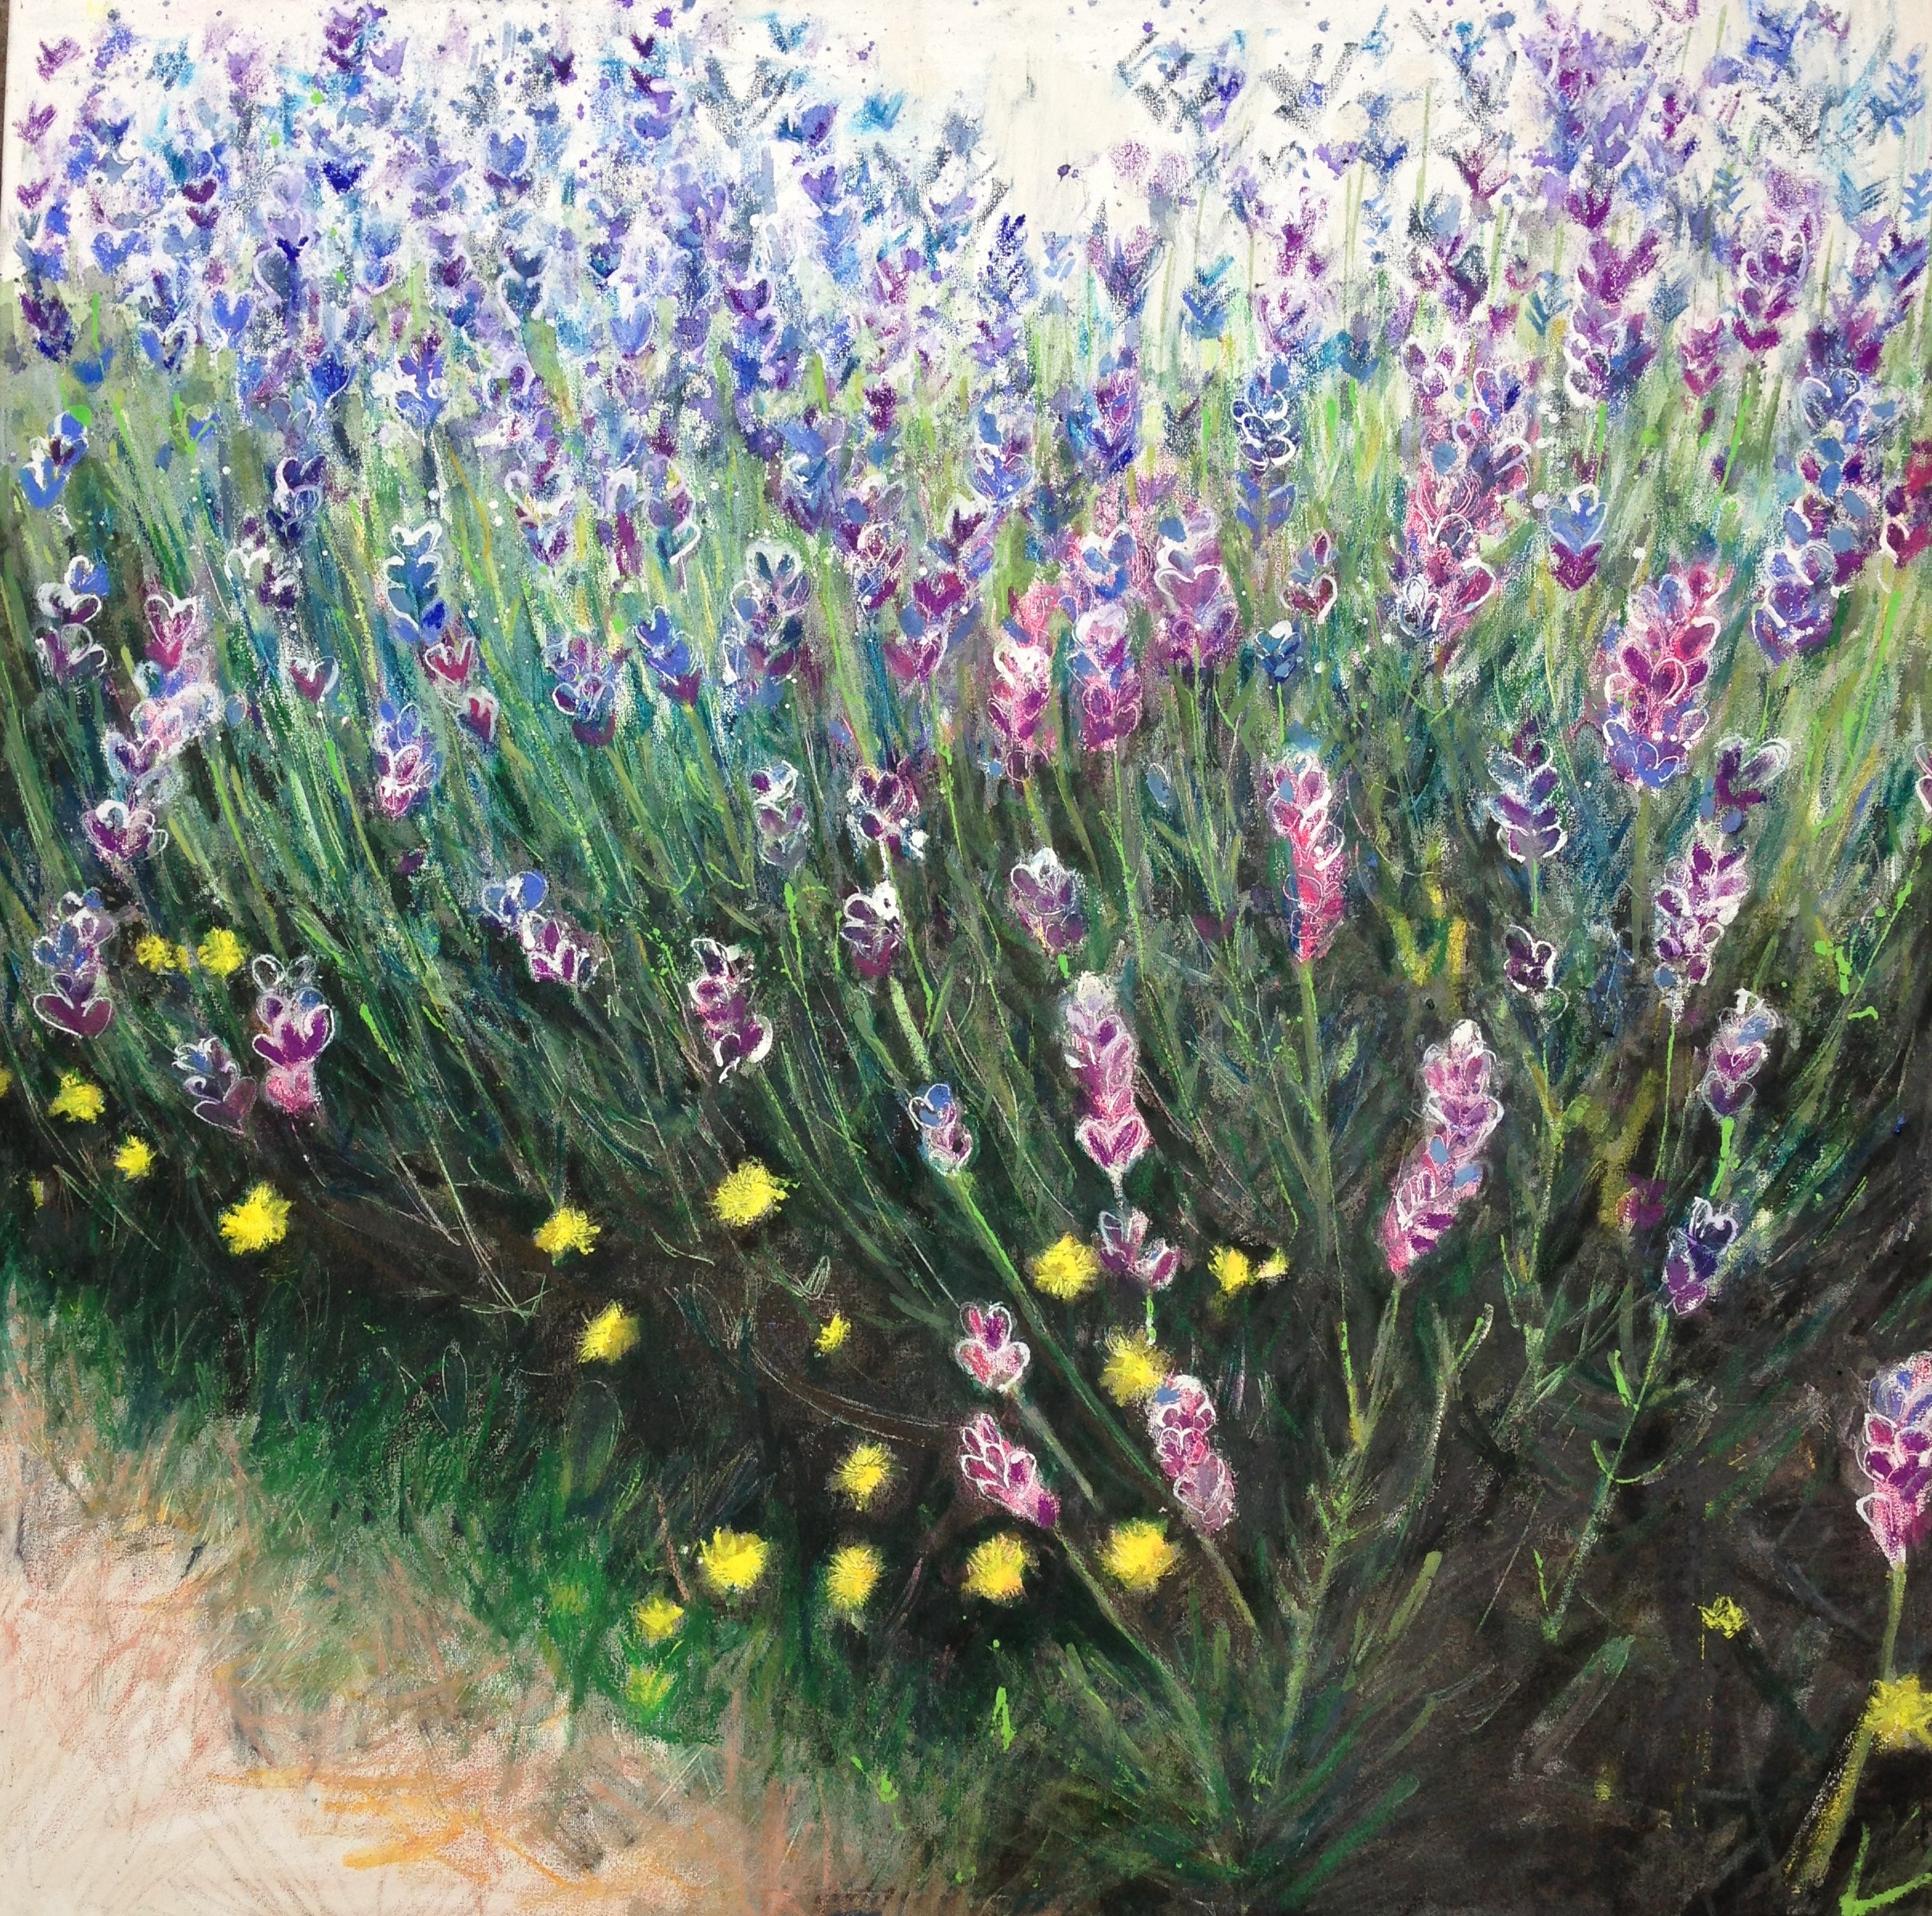 Jo Sharpe Mayfield's lavender